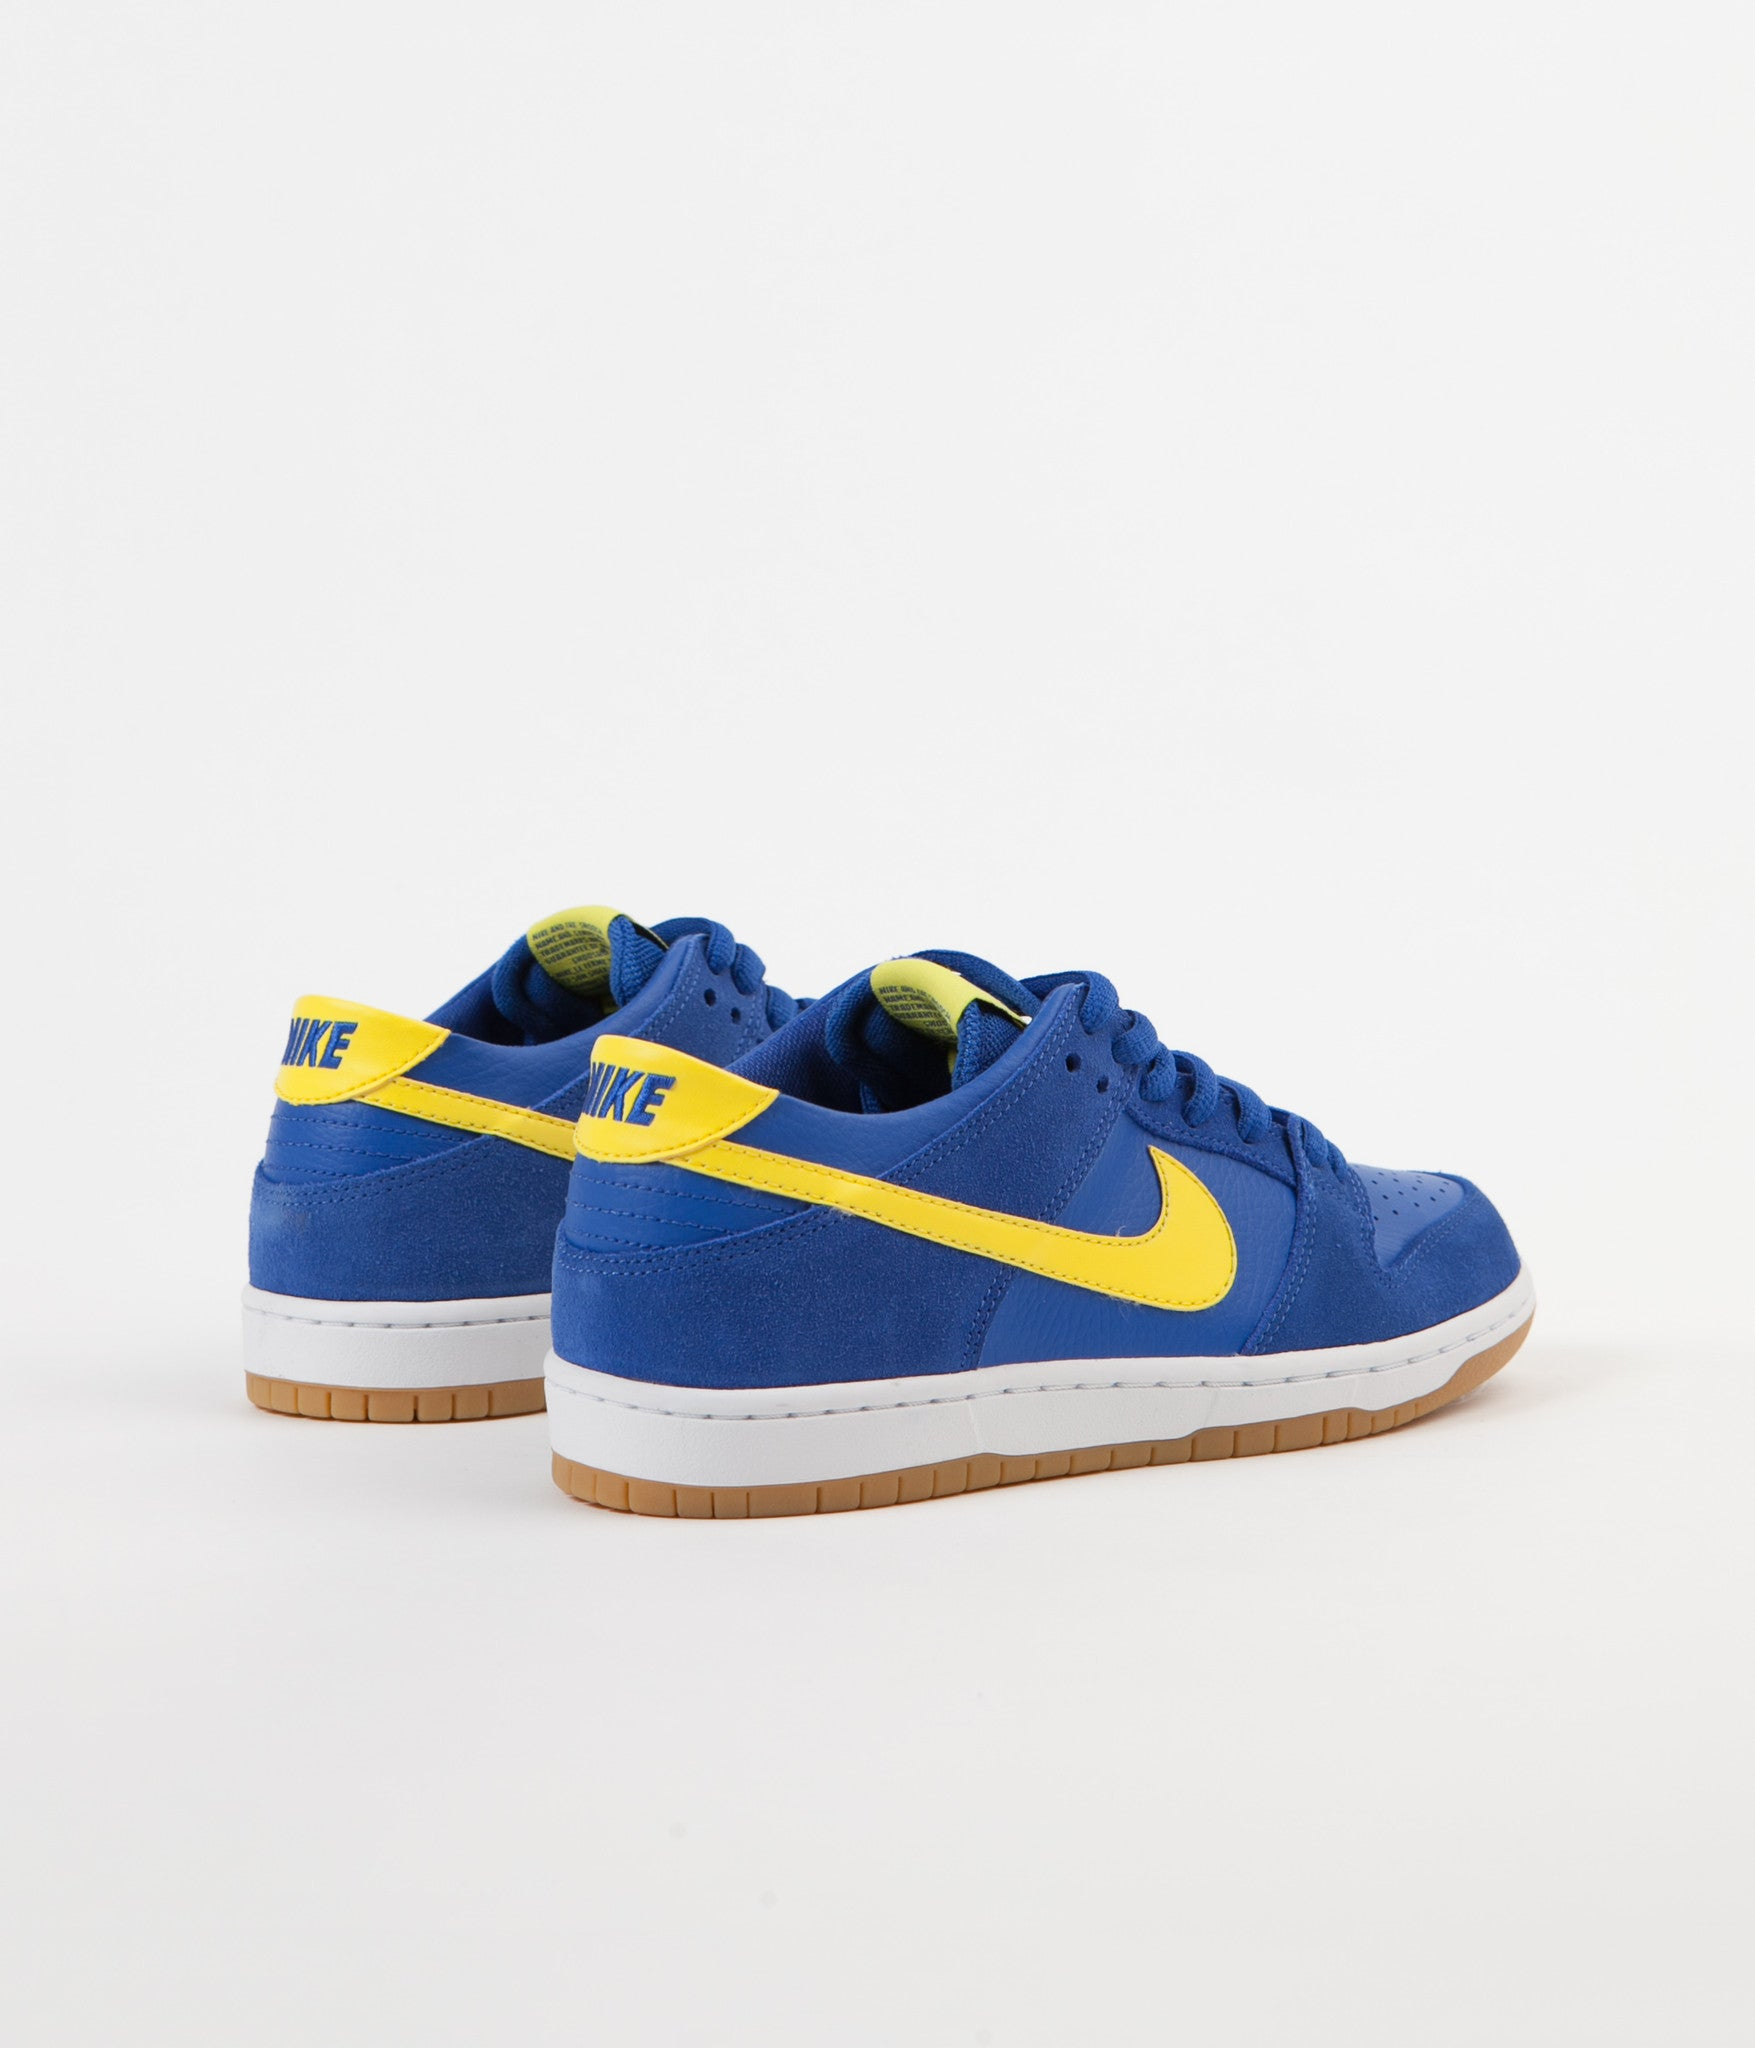 Nike SB Dunk Low Pro Shoes - Varsity Royal / Lightning - White